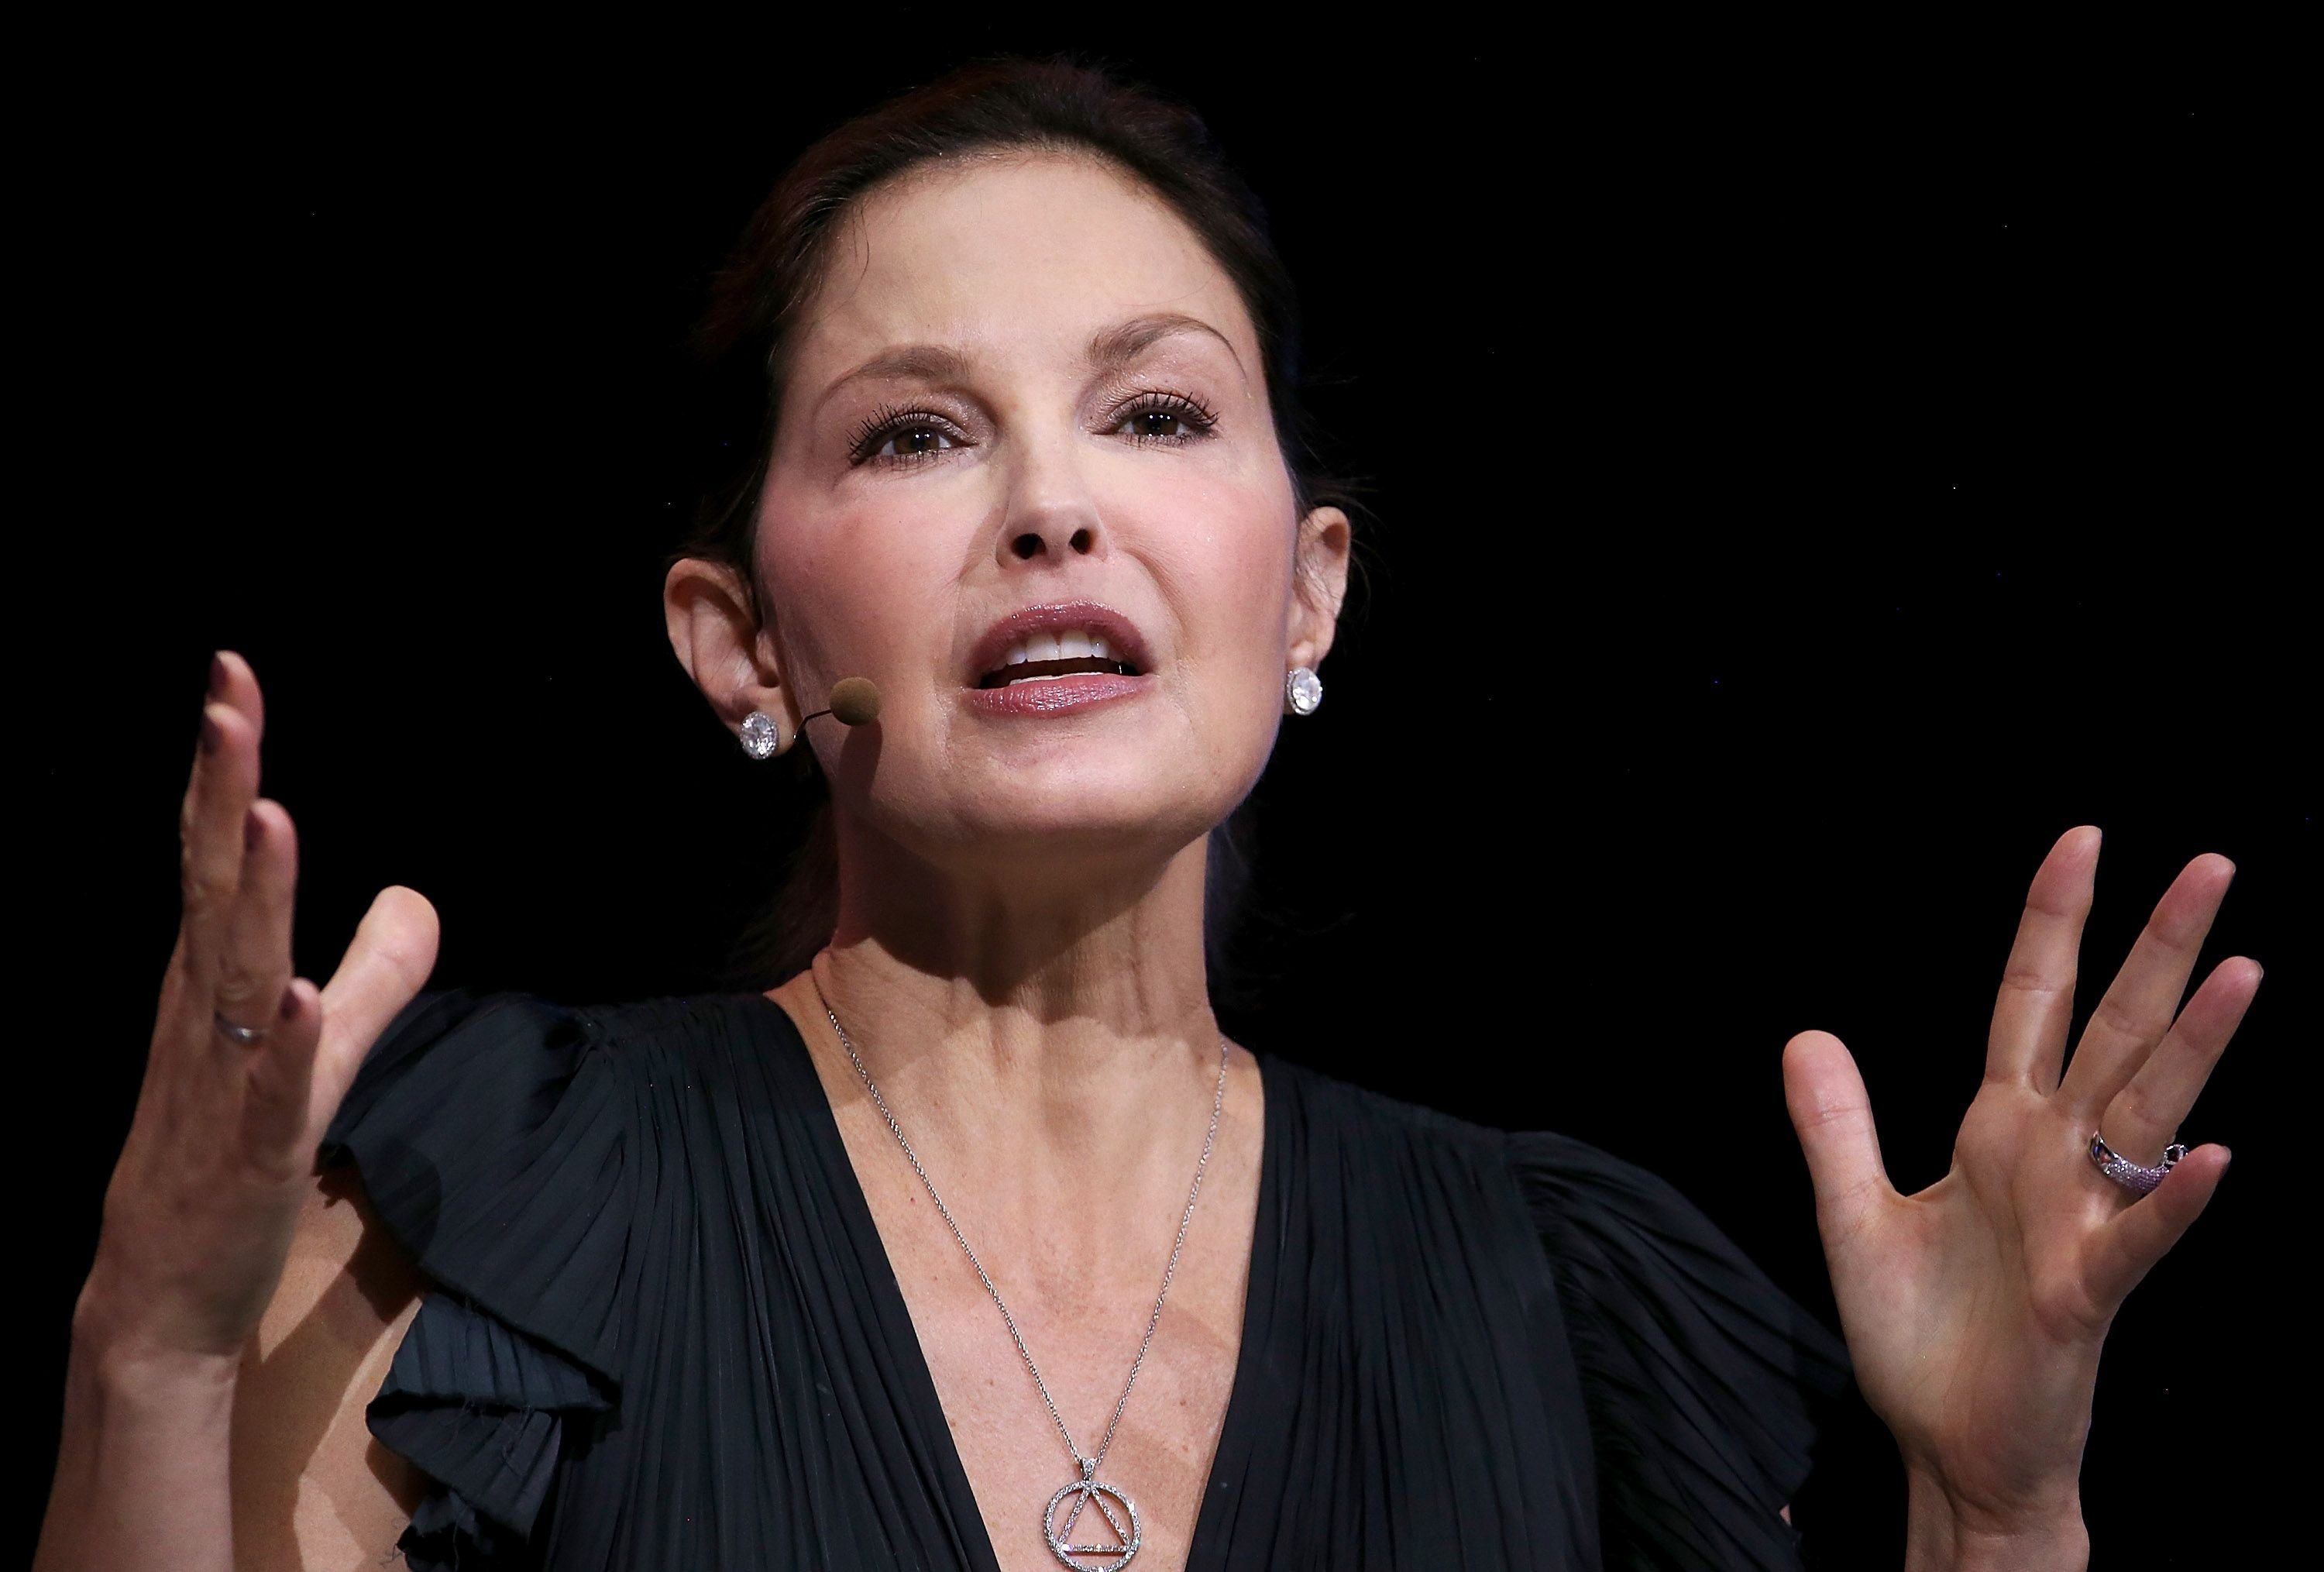 Ashley Judd at the 29th annual Conference of the Professional Businesswomen of California (PBWC) on April 24, 2018 | Getty Images